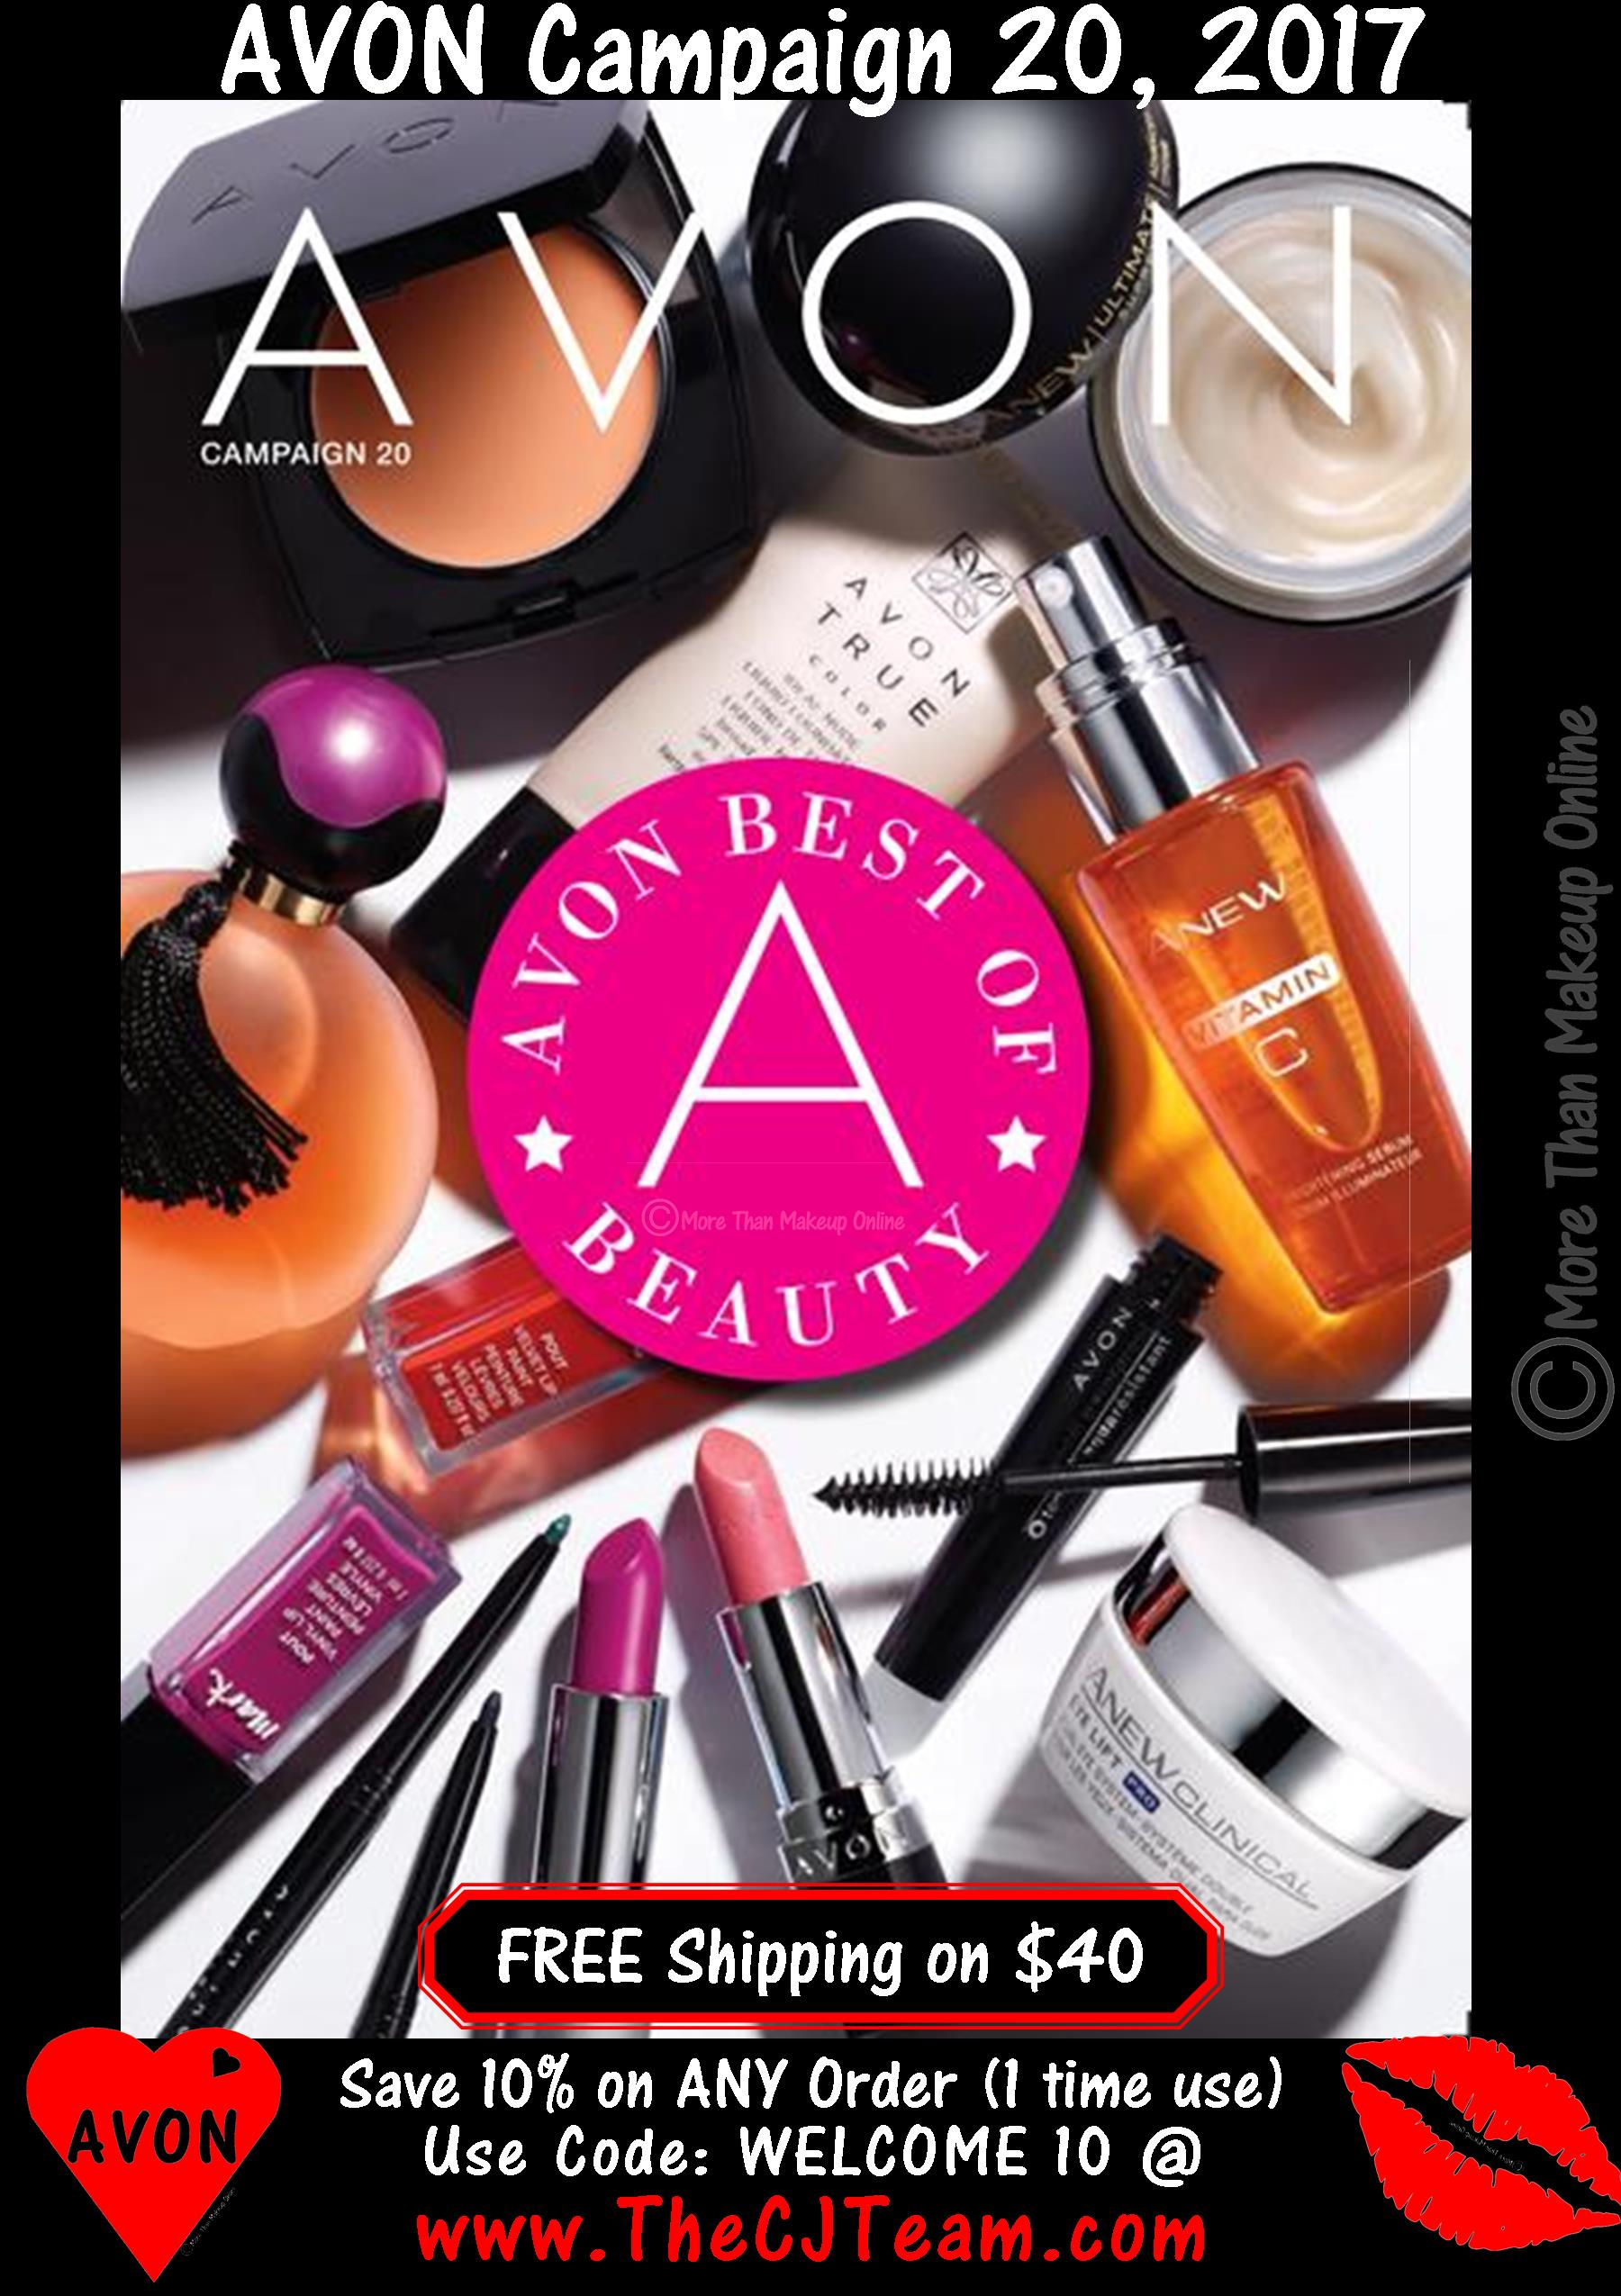 Avon Hand Cream Sale - More Than Makeup Online